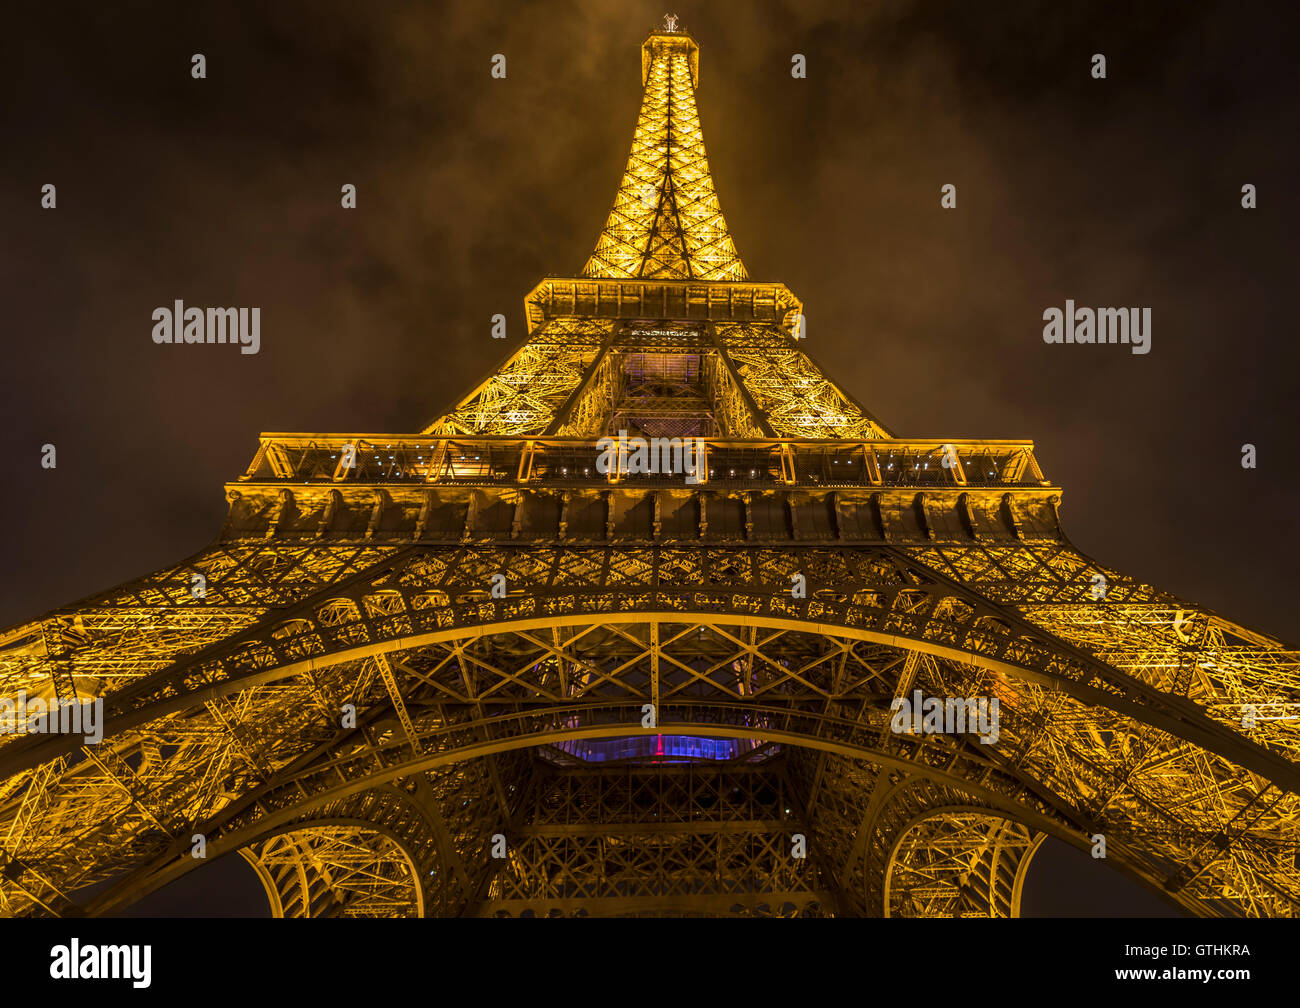 Bottom up night view with the Eiffel Tower - Stock Image